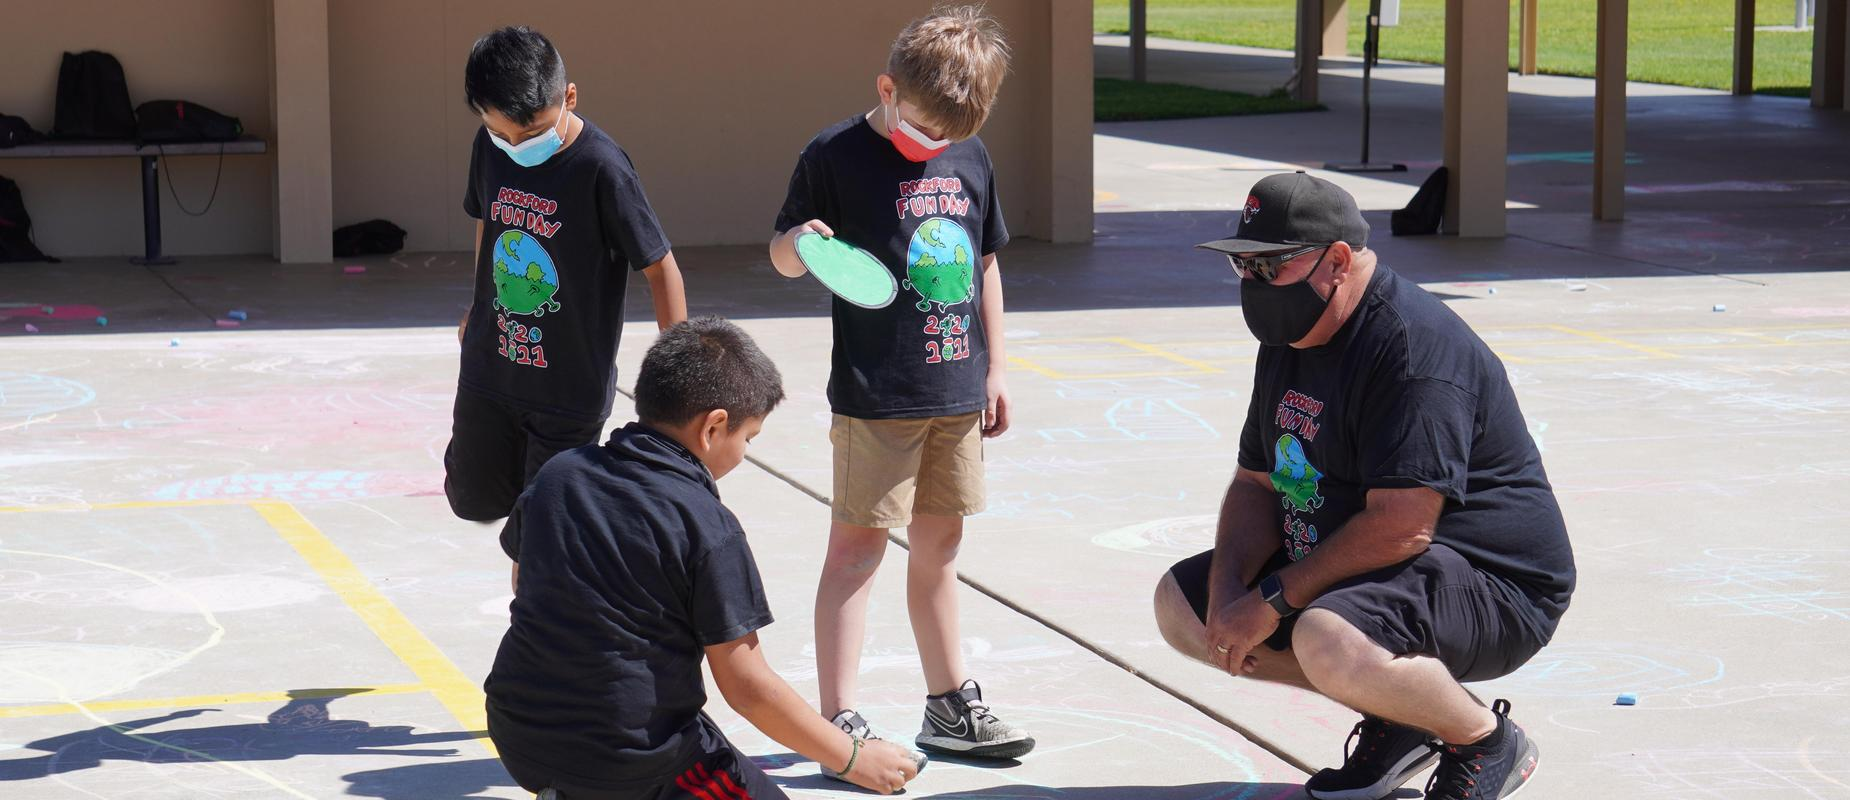 Photo of teacher and students playing with sidewalk chalk.